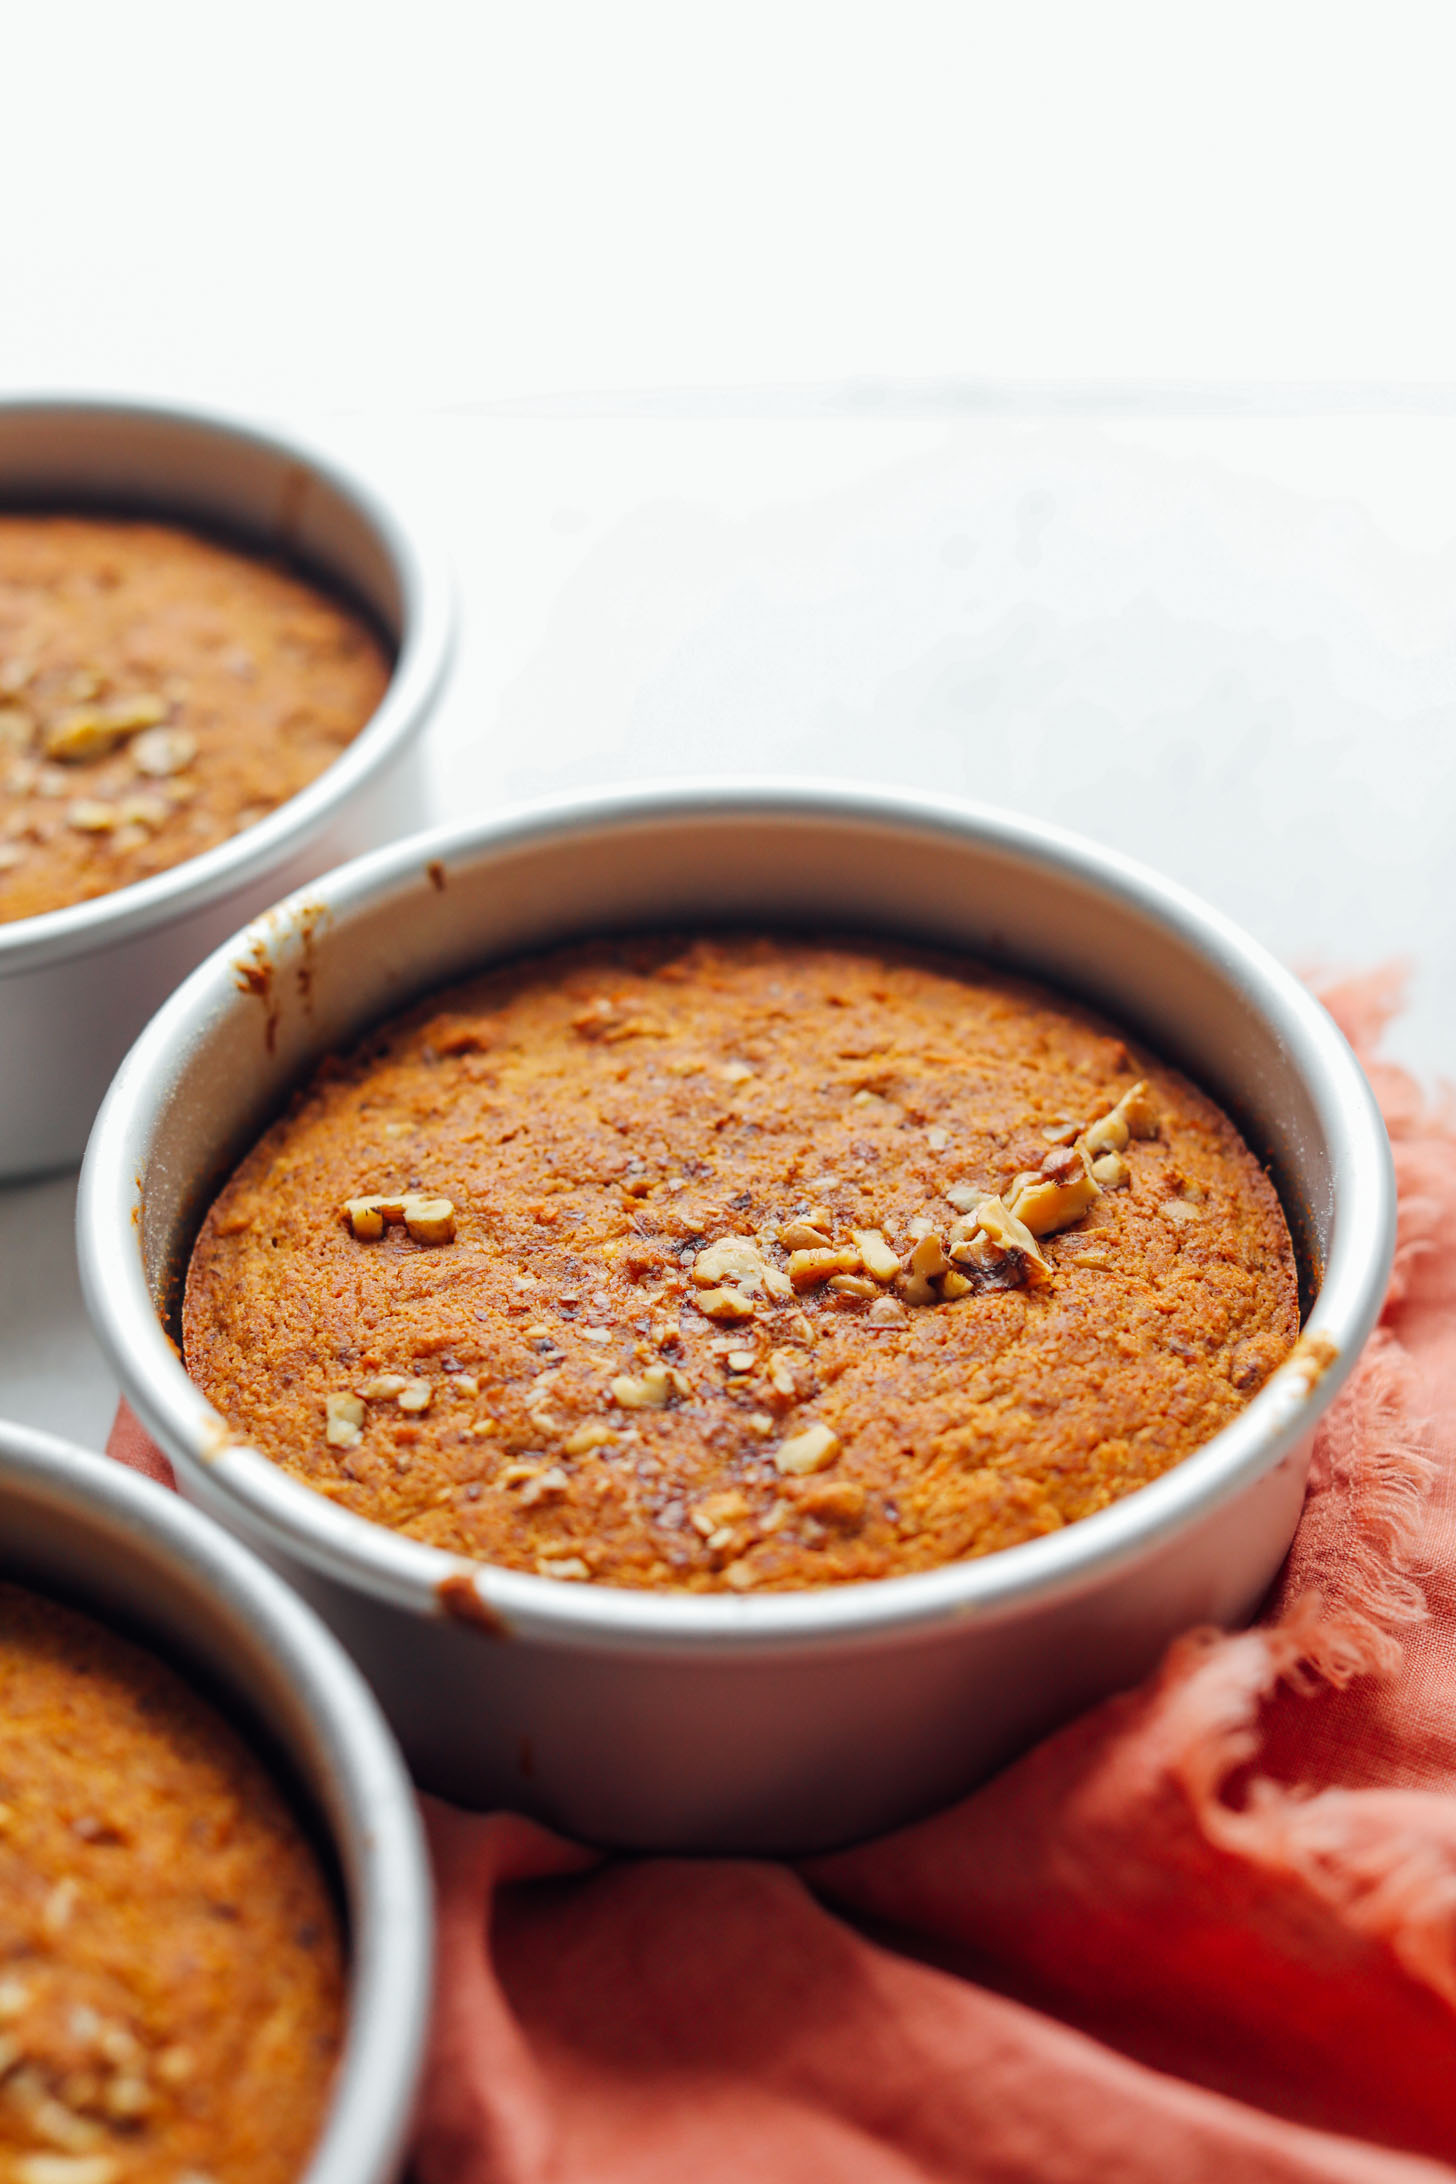 Round baking pans with freshly baked Vegan Gluten-Free Carrot Cake